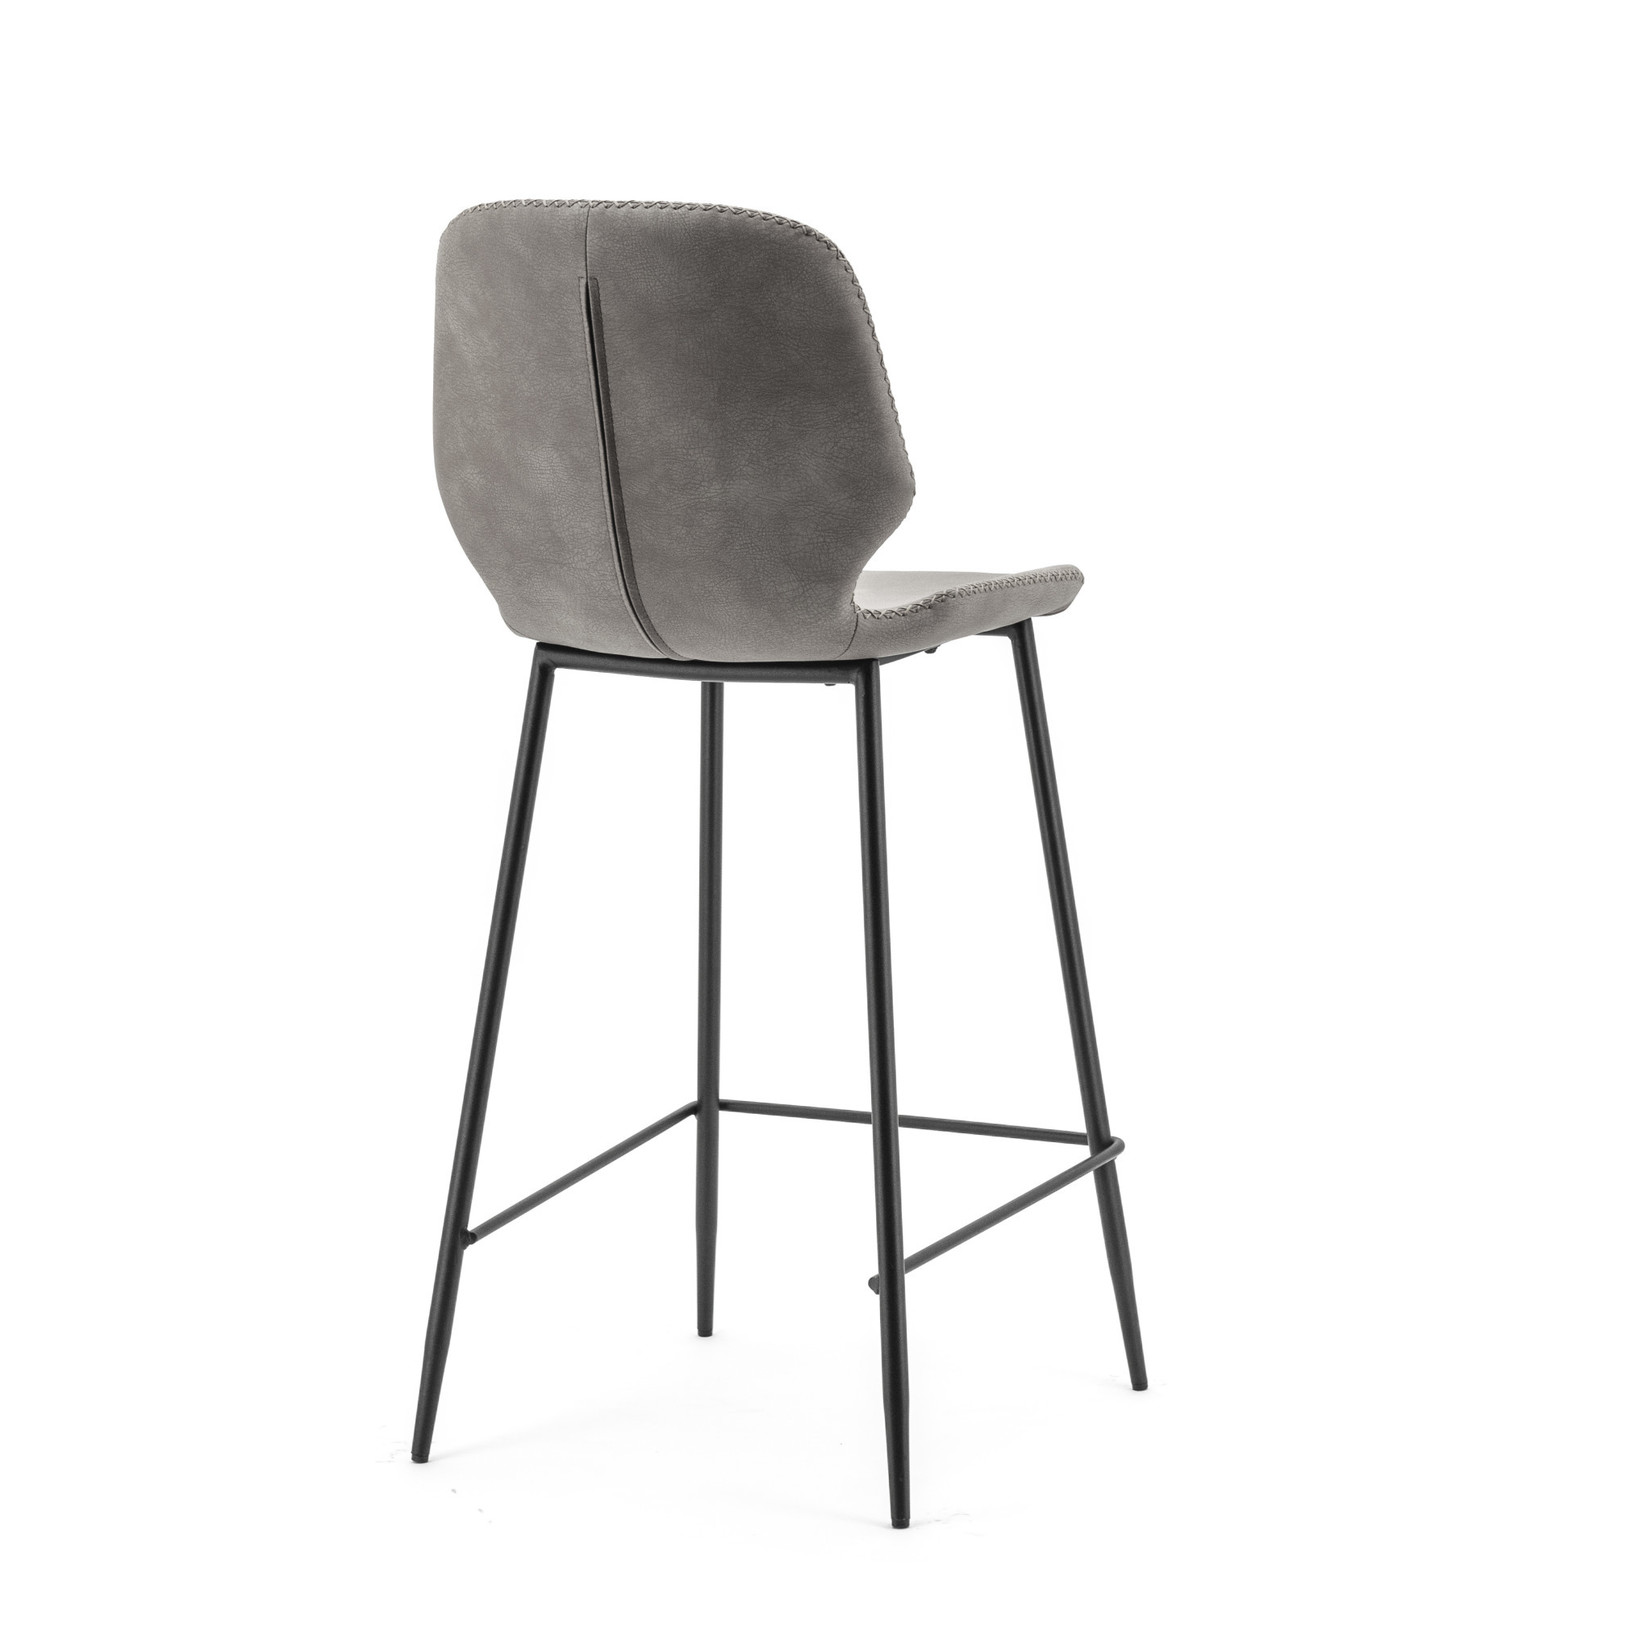 By Boo By Boo Barchair Seashell high - grey